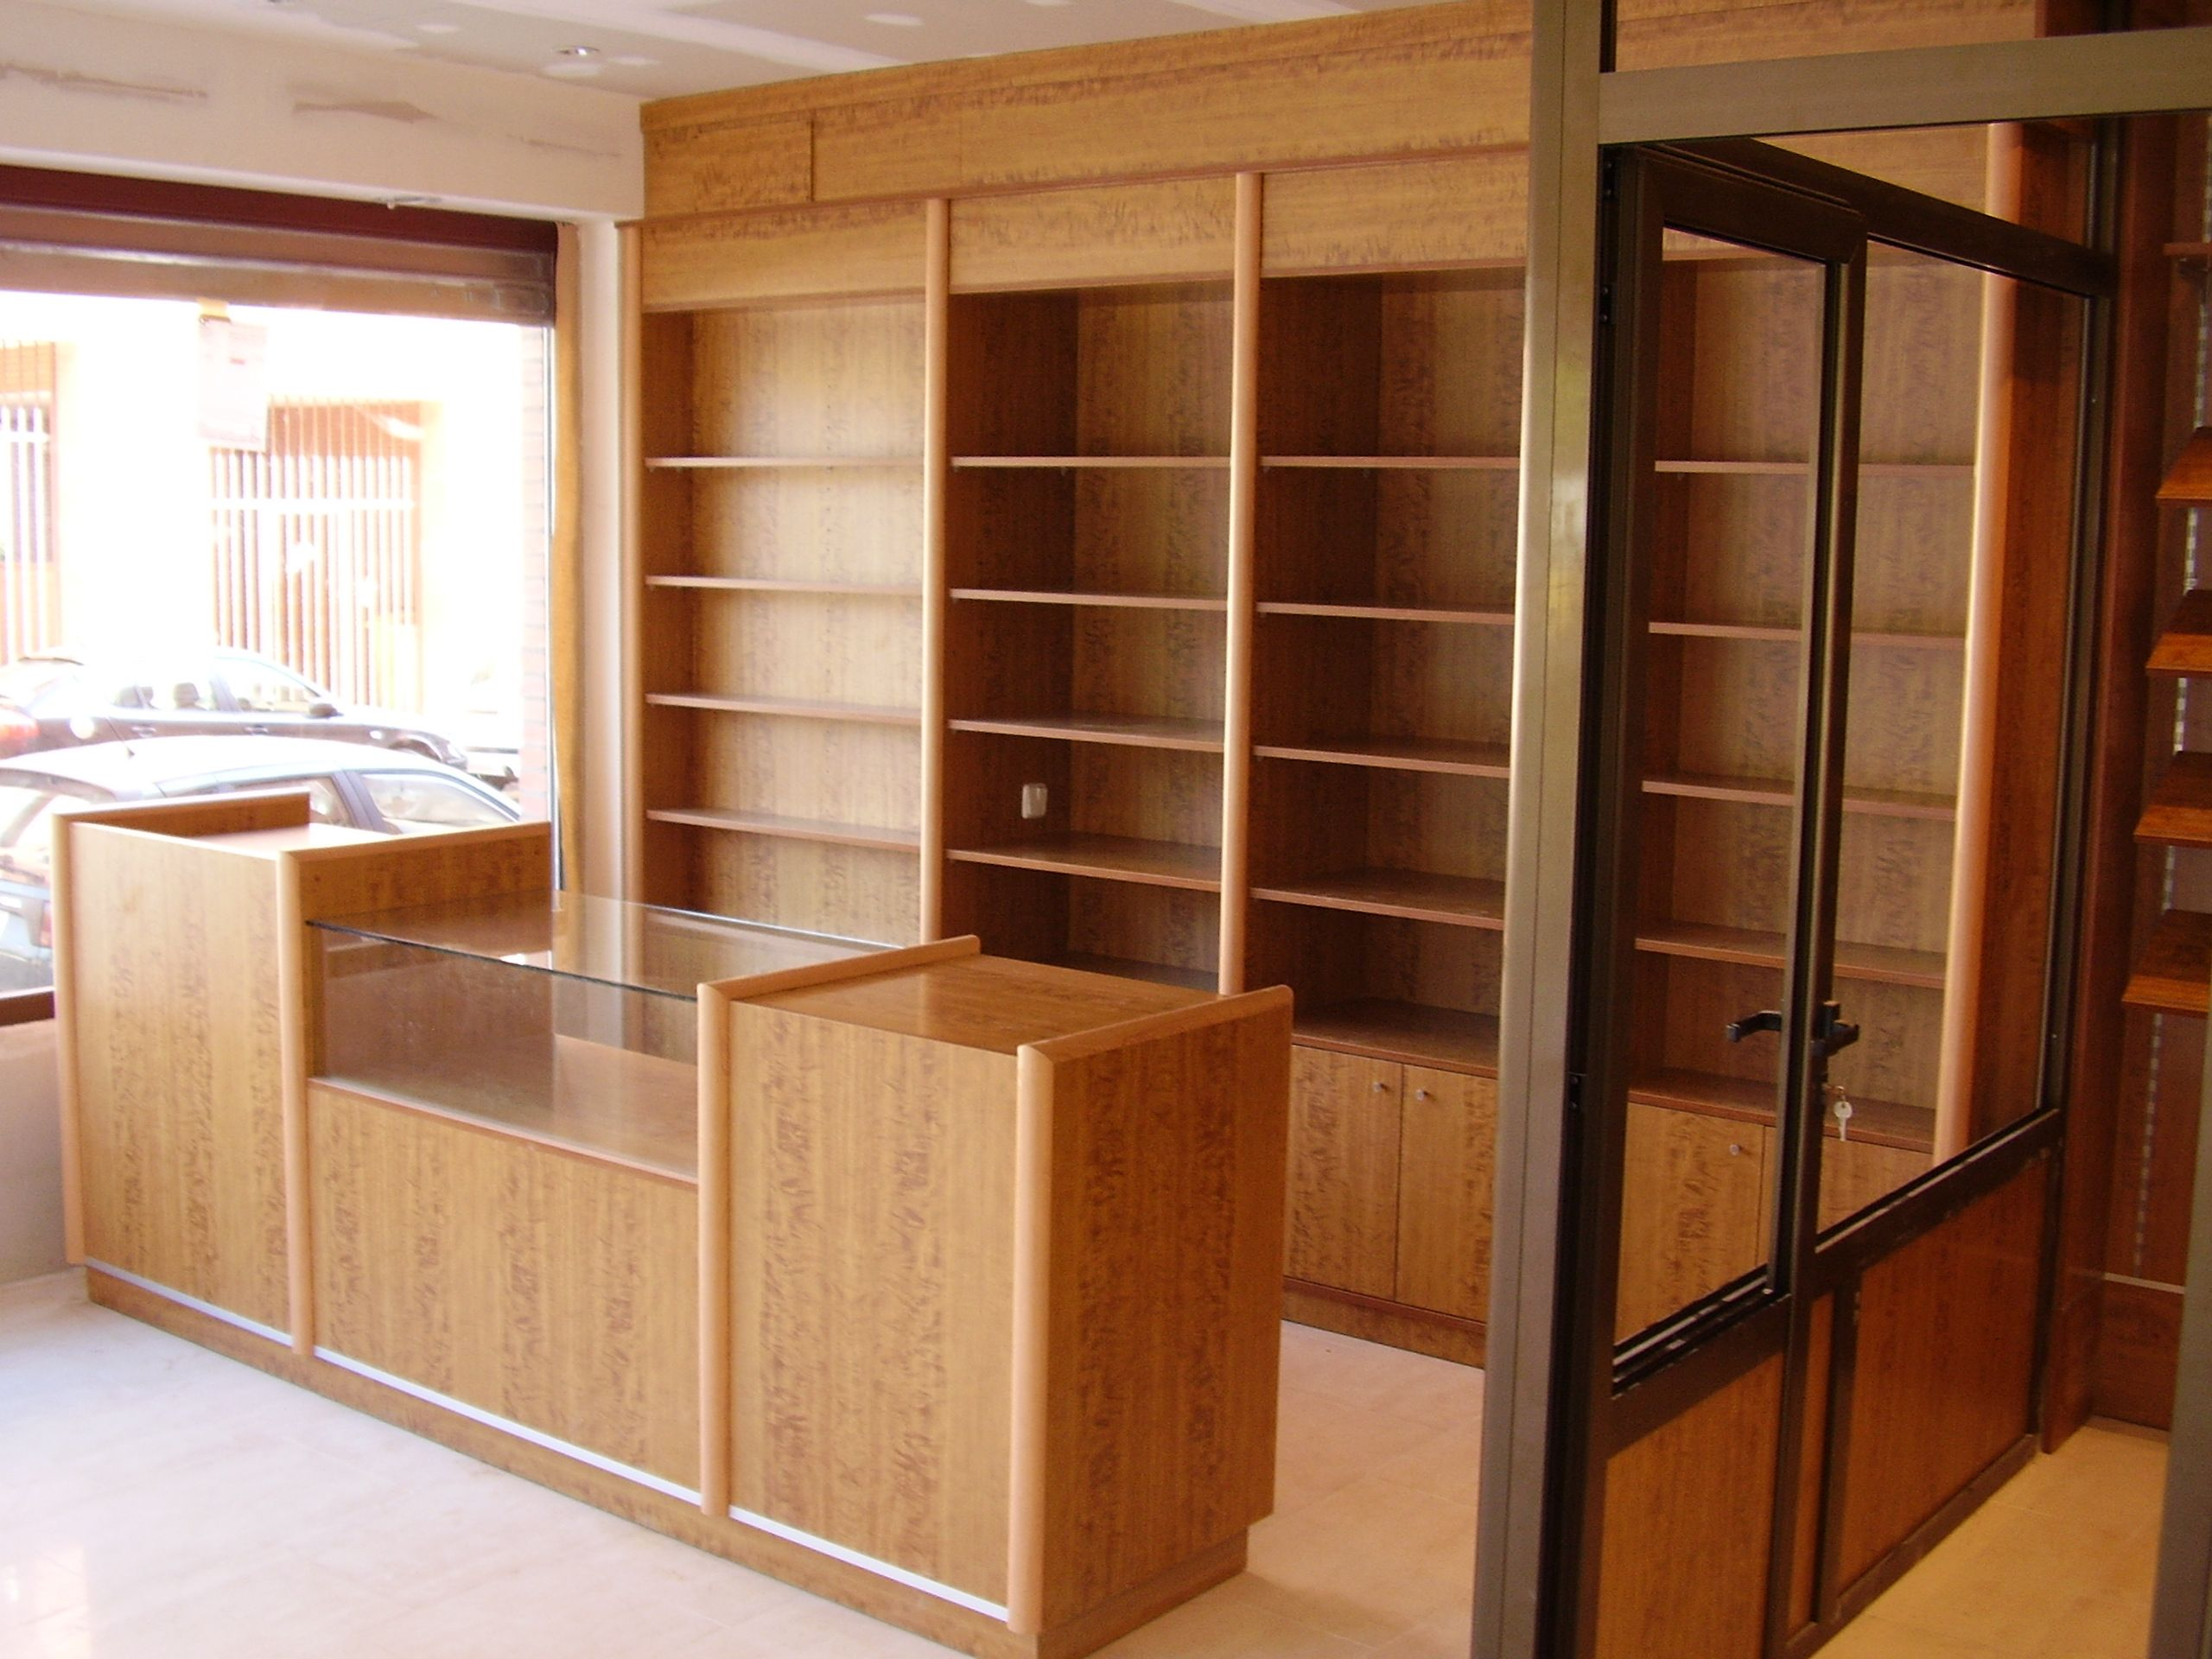 Mobiliario para comercios muebles de madera y estanter as for Muebles para montar